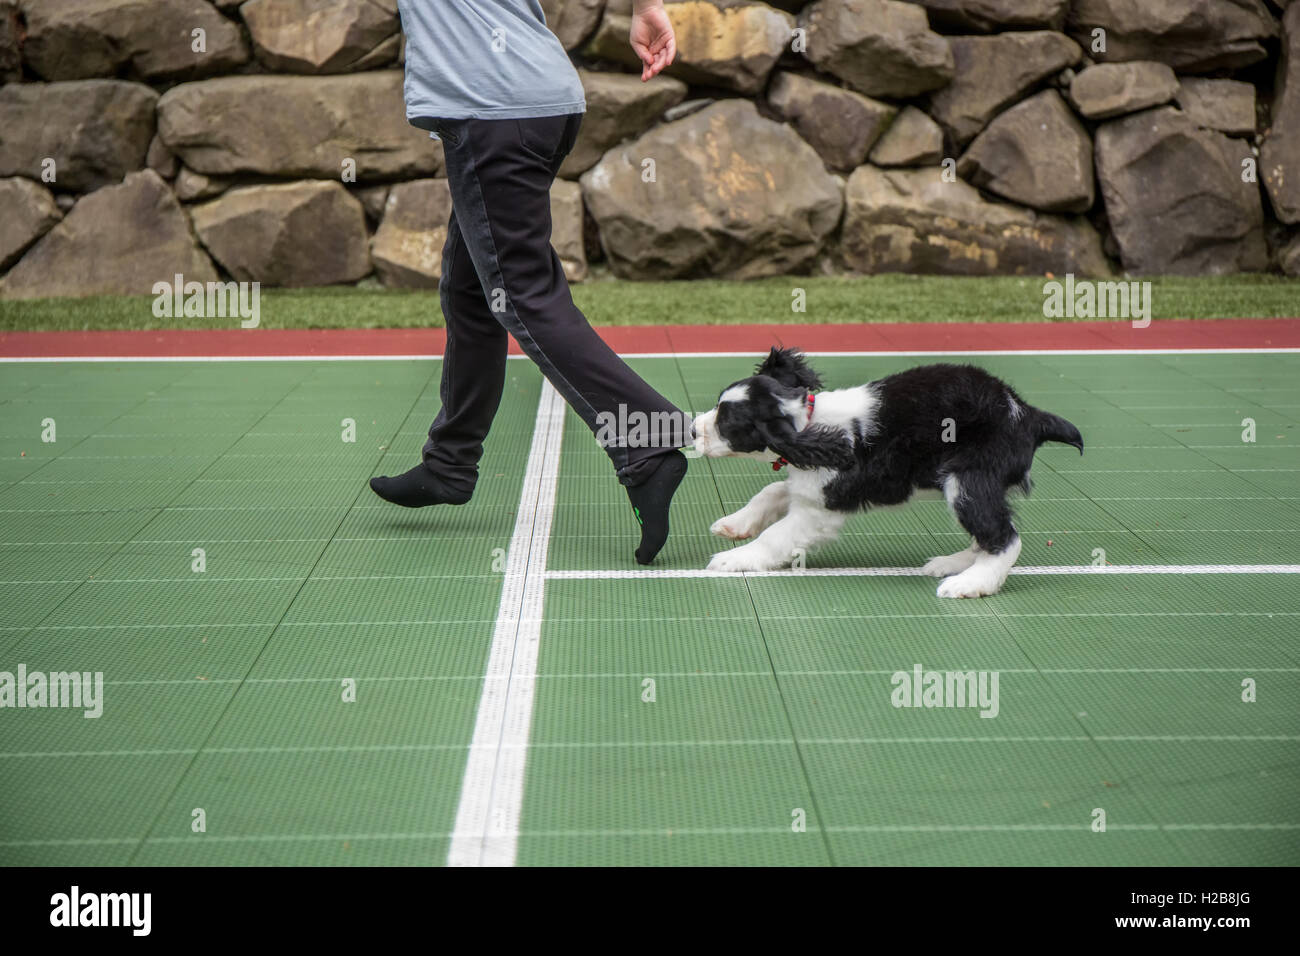 Two month old Springer Spaniel puppy, Tre, biting the pants let of his owner as he chases her in fun, in Issaquah, - Stock Image